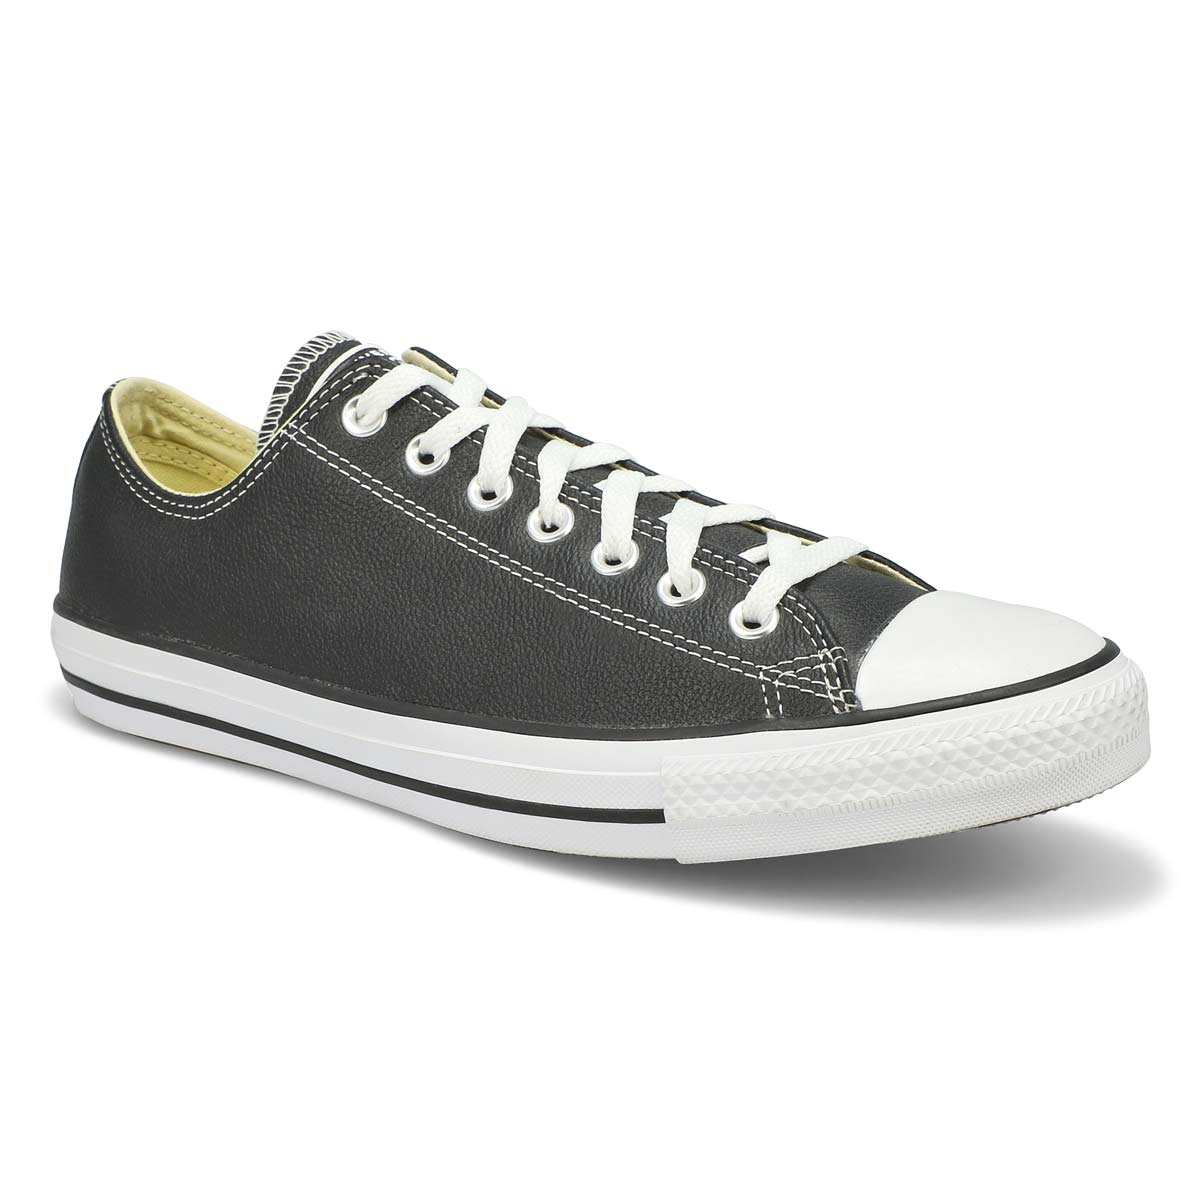 Mns CT All Star Leather black sneaker